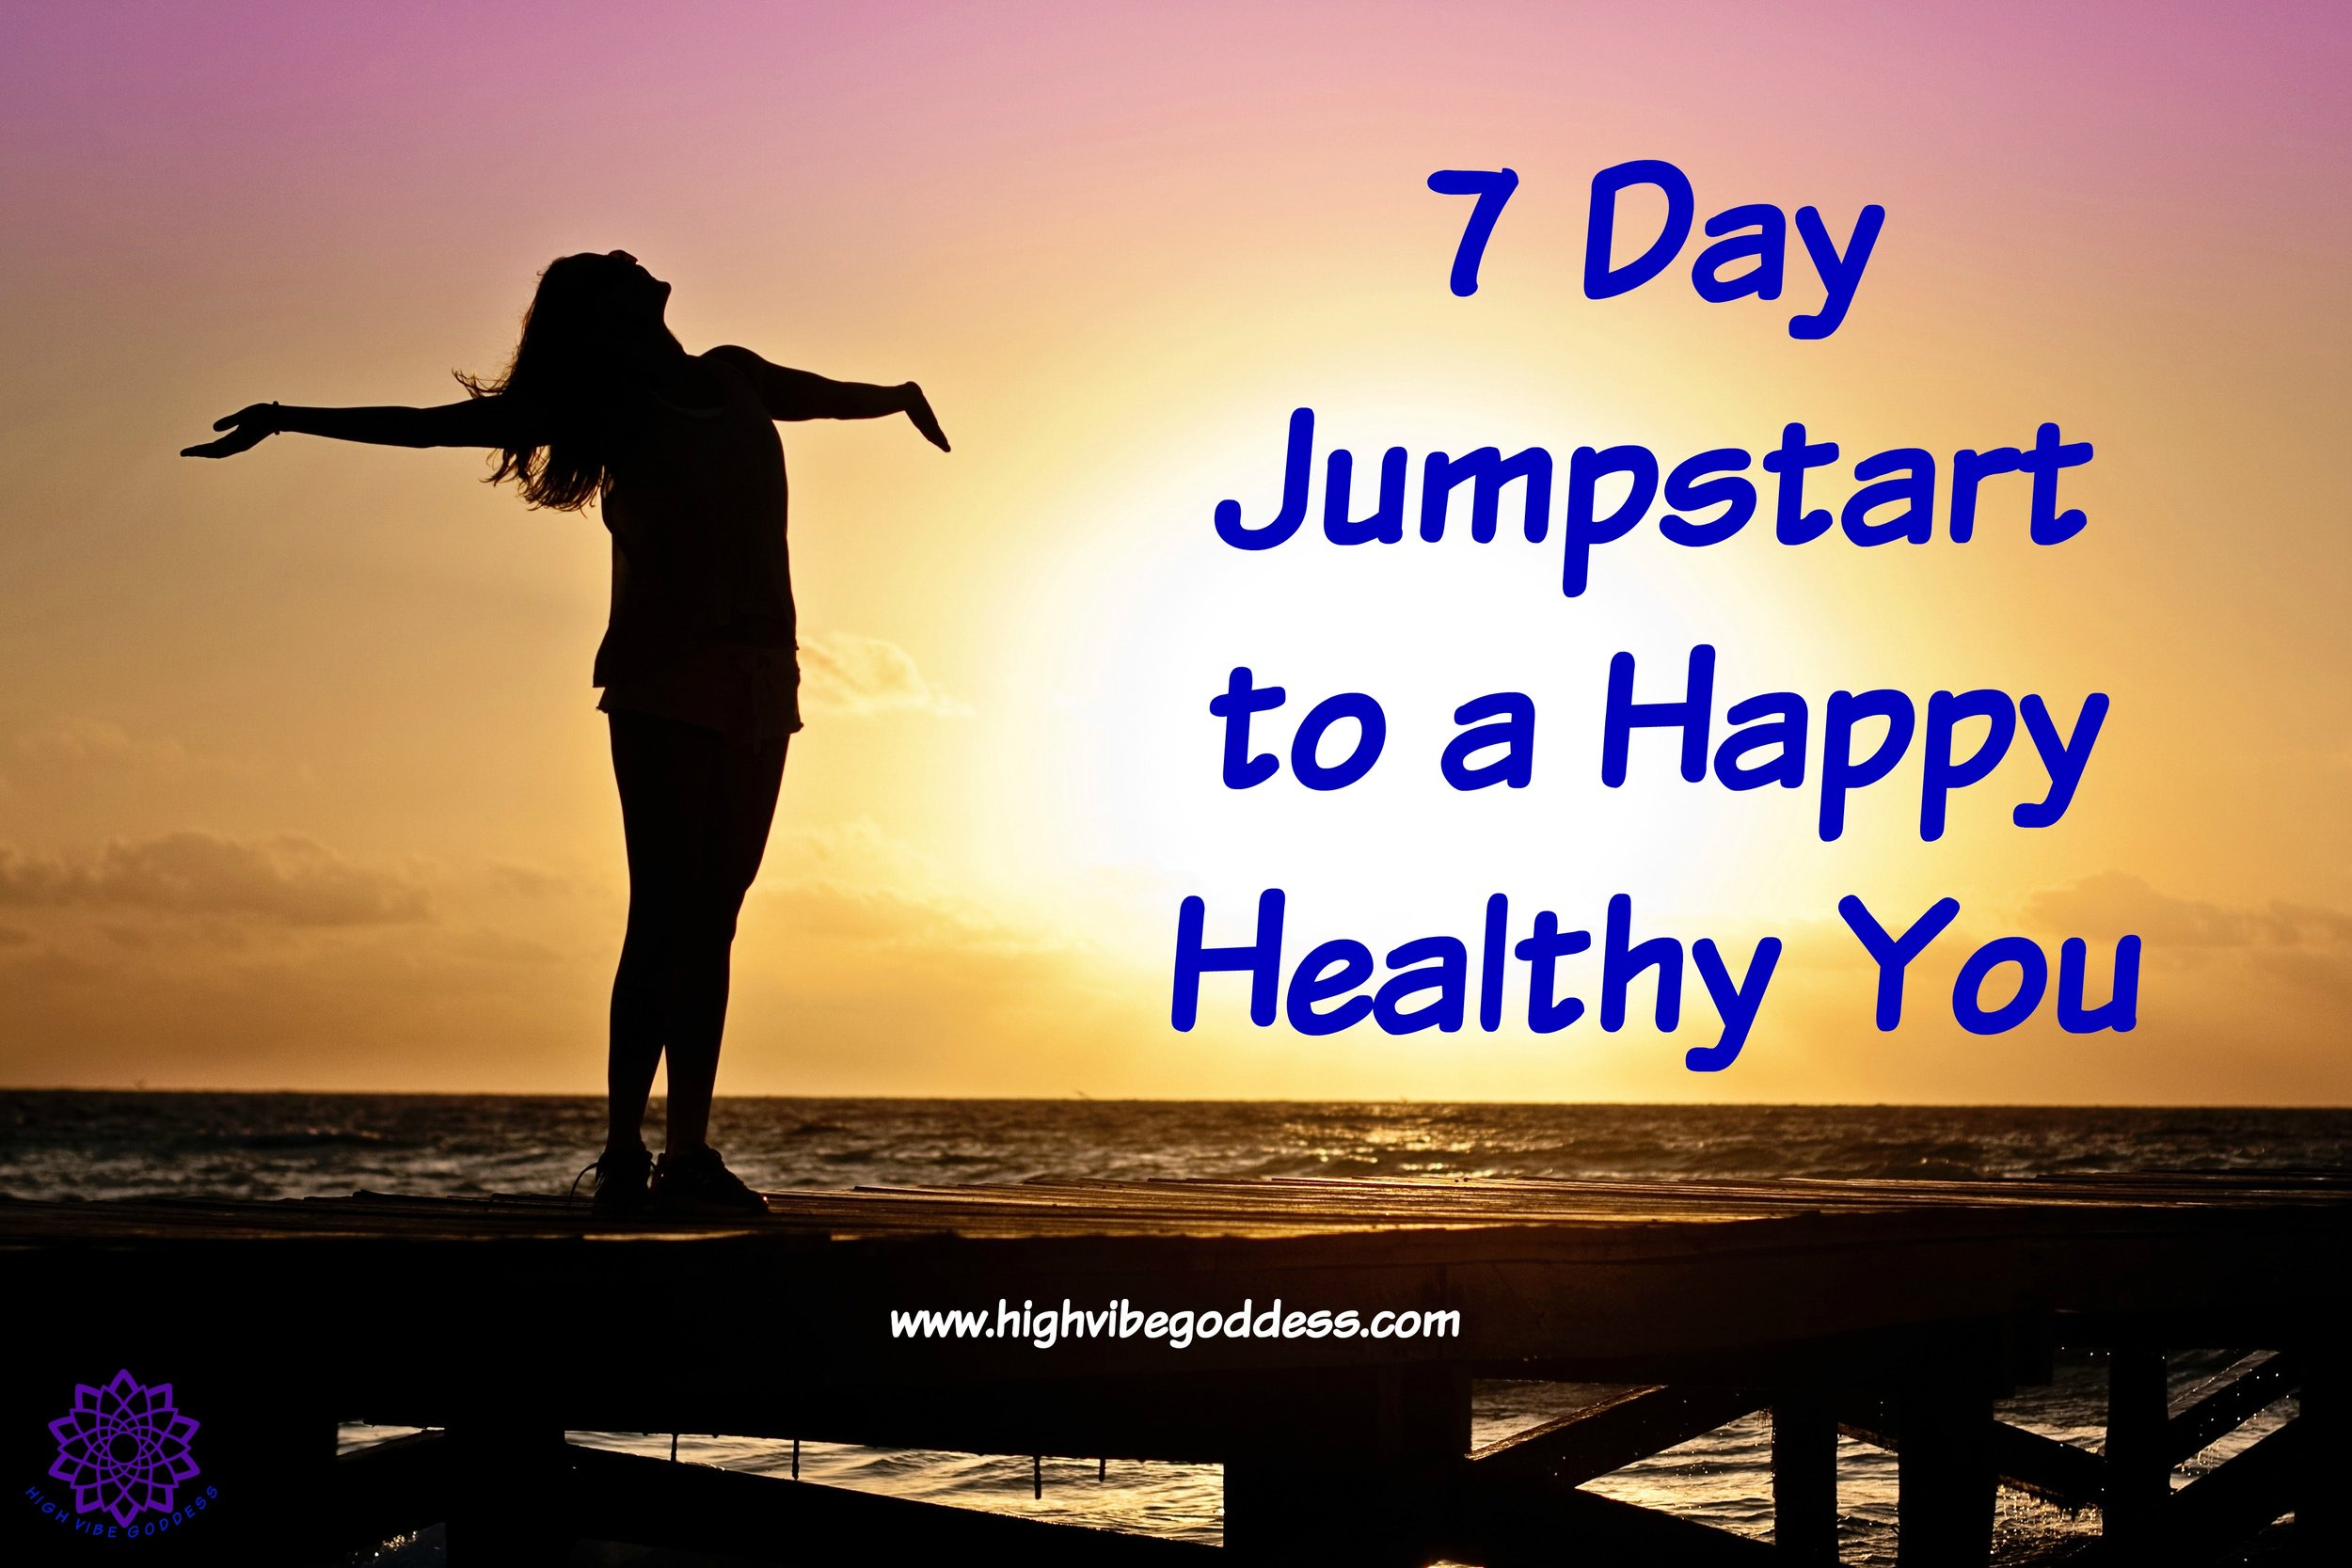 Jumpstart Happy Healthy You.jpg